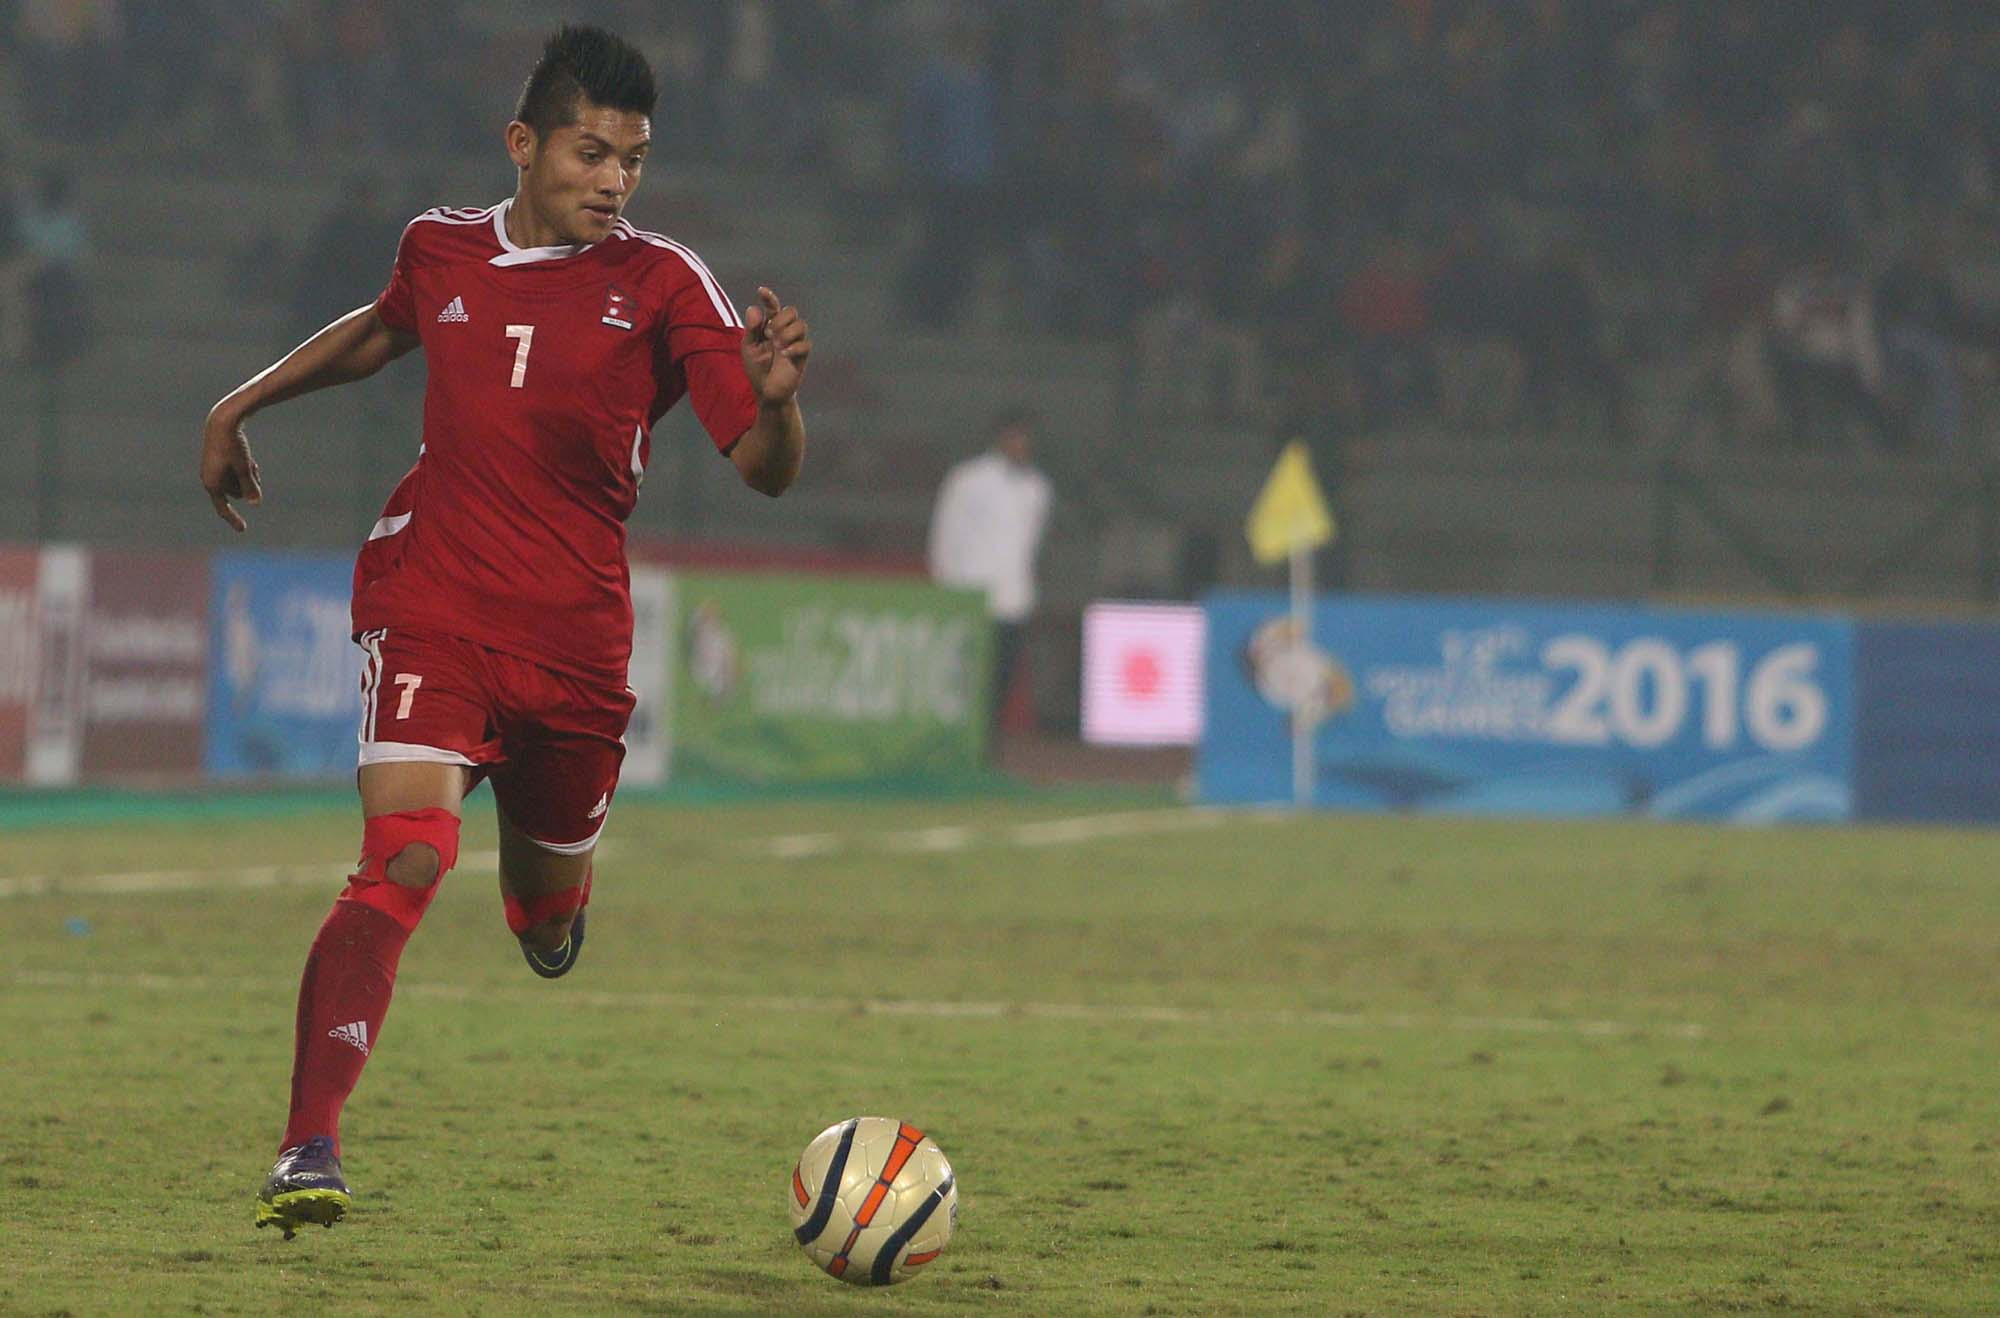 Nepali Player win India in South Asian Games 2016 1